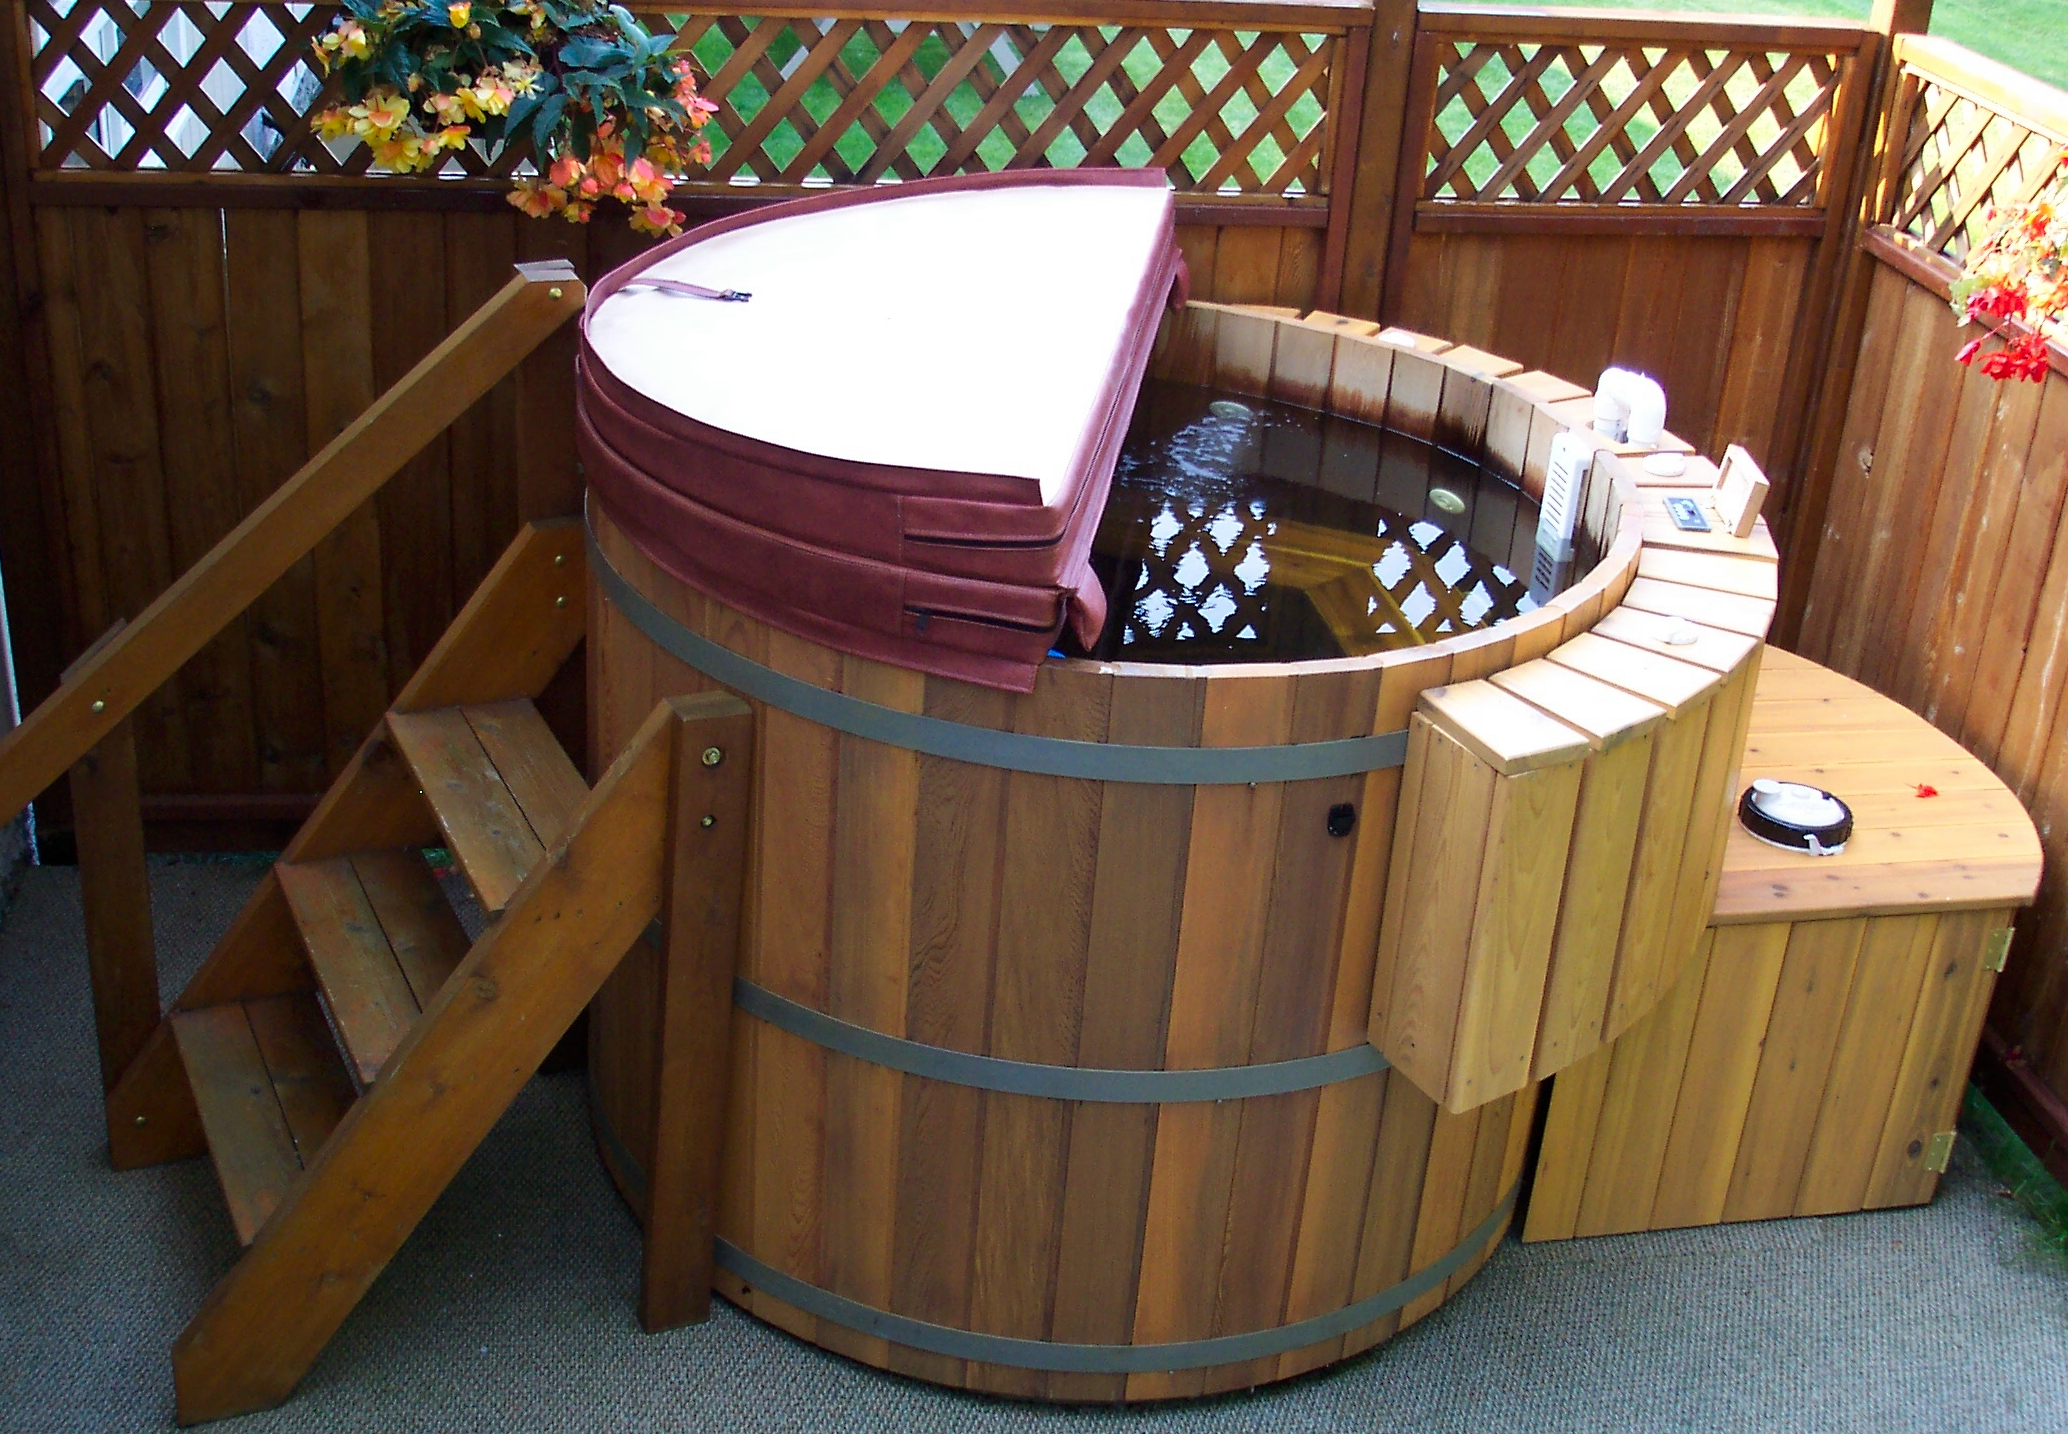 hot-tub-high-angle-view-7_11057983653_o